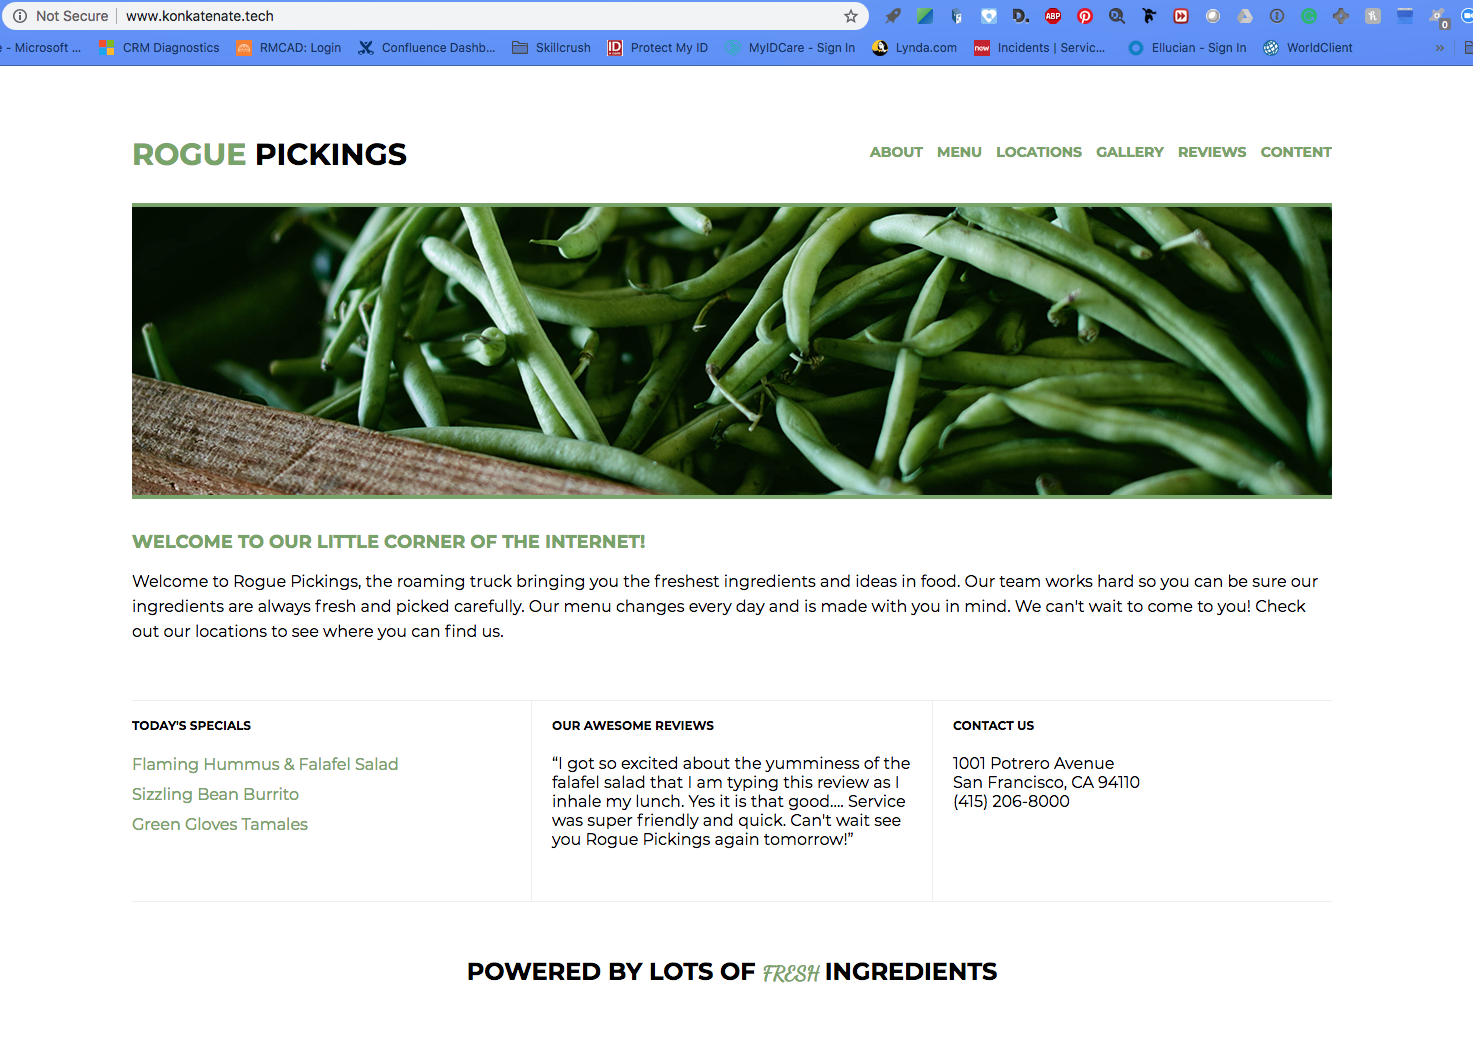 Rogue Pickings image web mockup for fresh food delivery service.